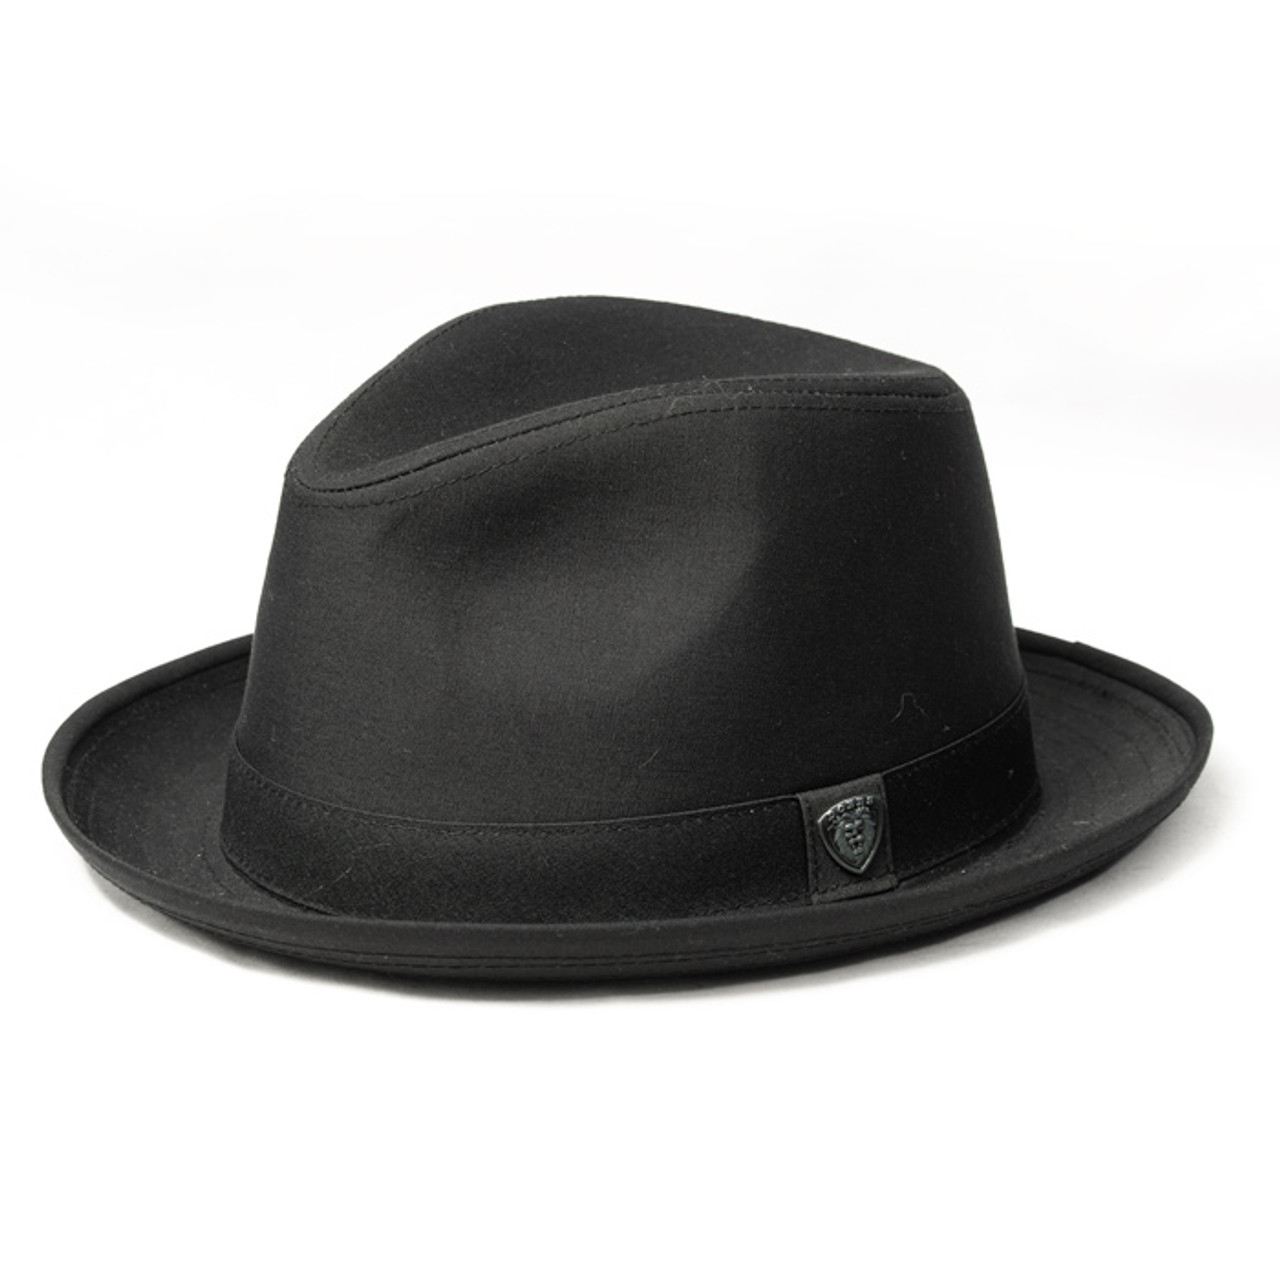 Dobbs - Andes All-Weather Cotton Canvas Roll-Up Fedora